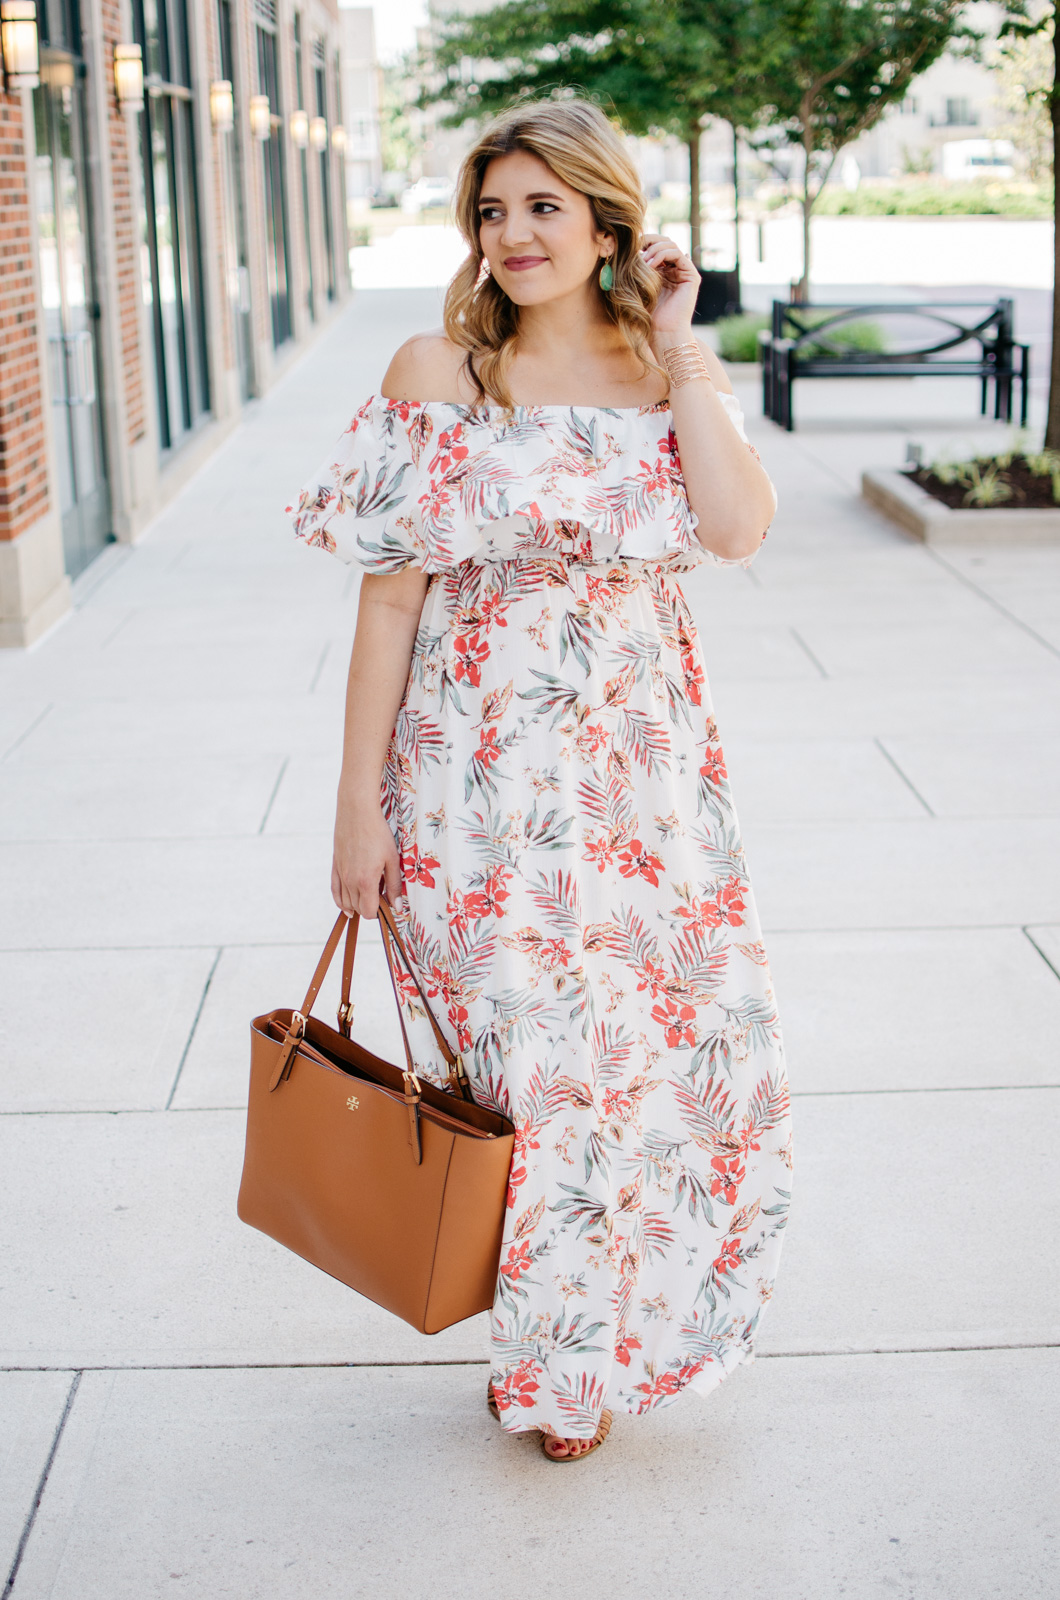 summer maternity outfit - palm print maxi dress | For more cute pregnancy outfits, head to bylaurenm.com!